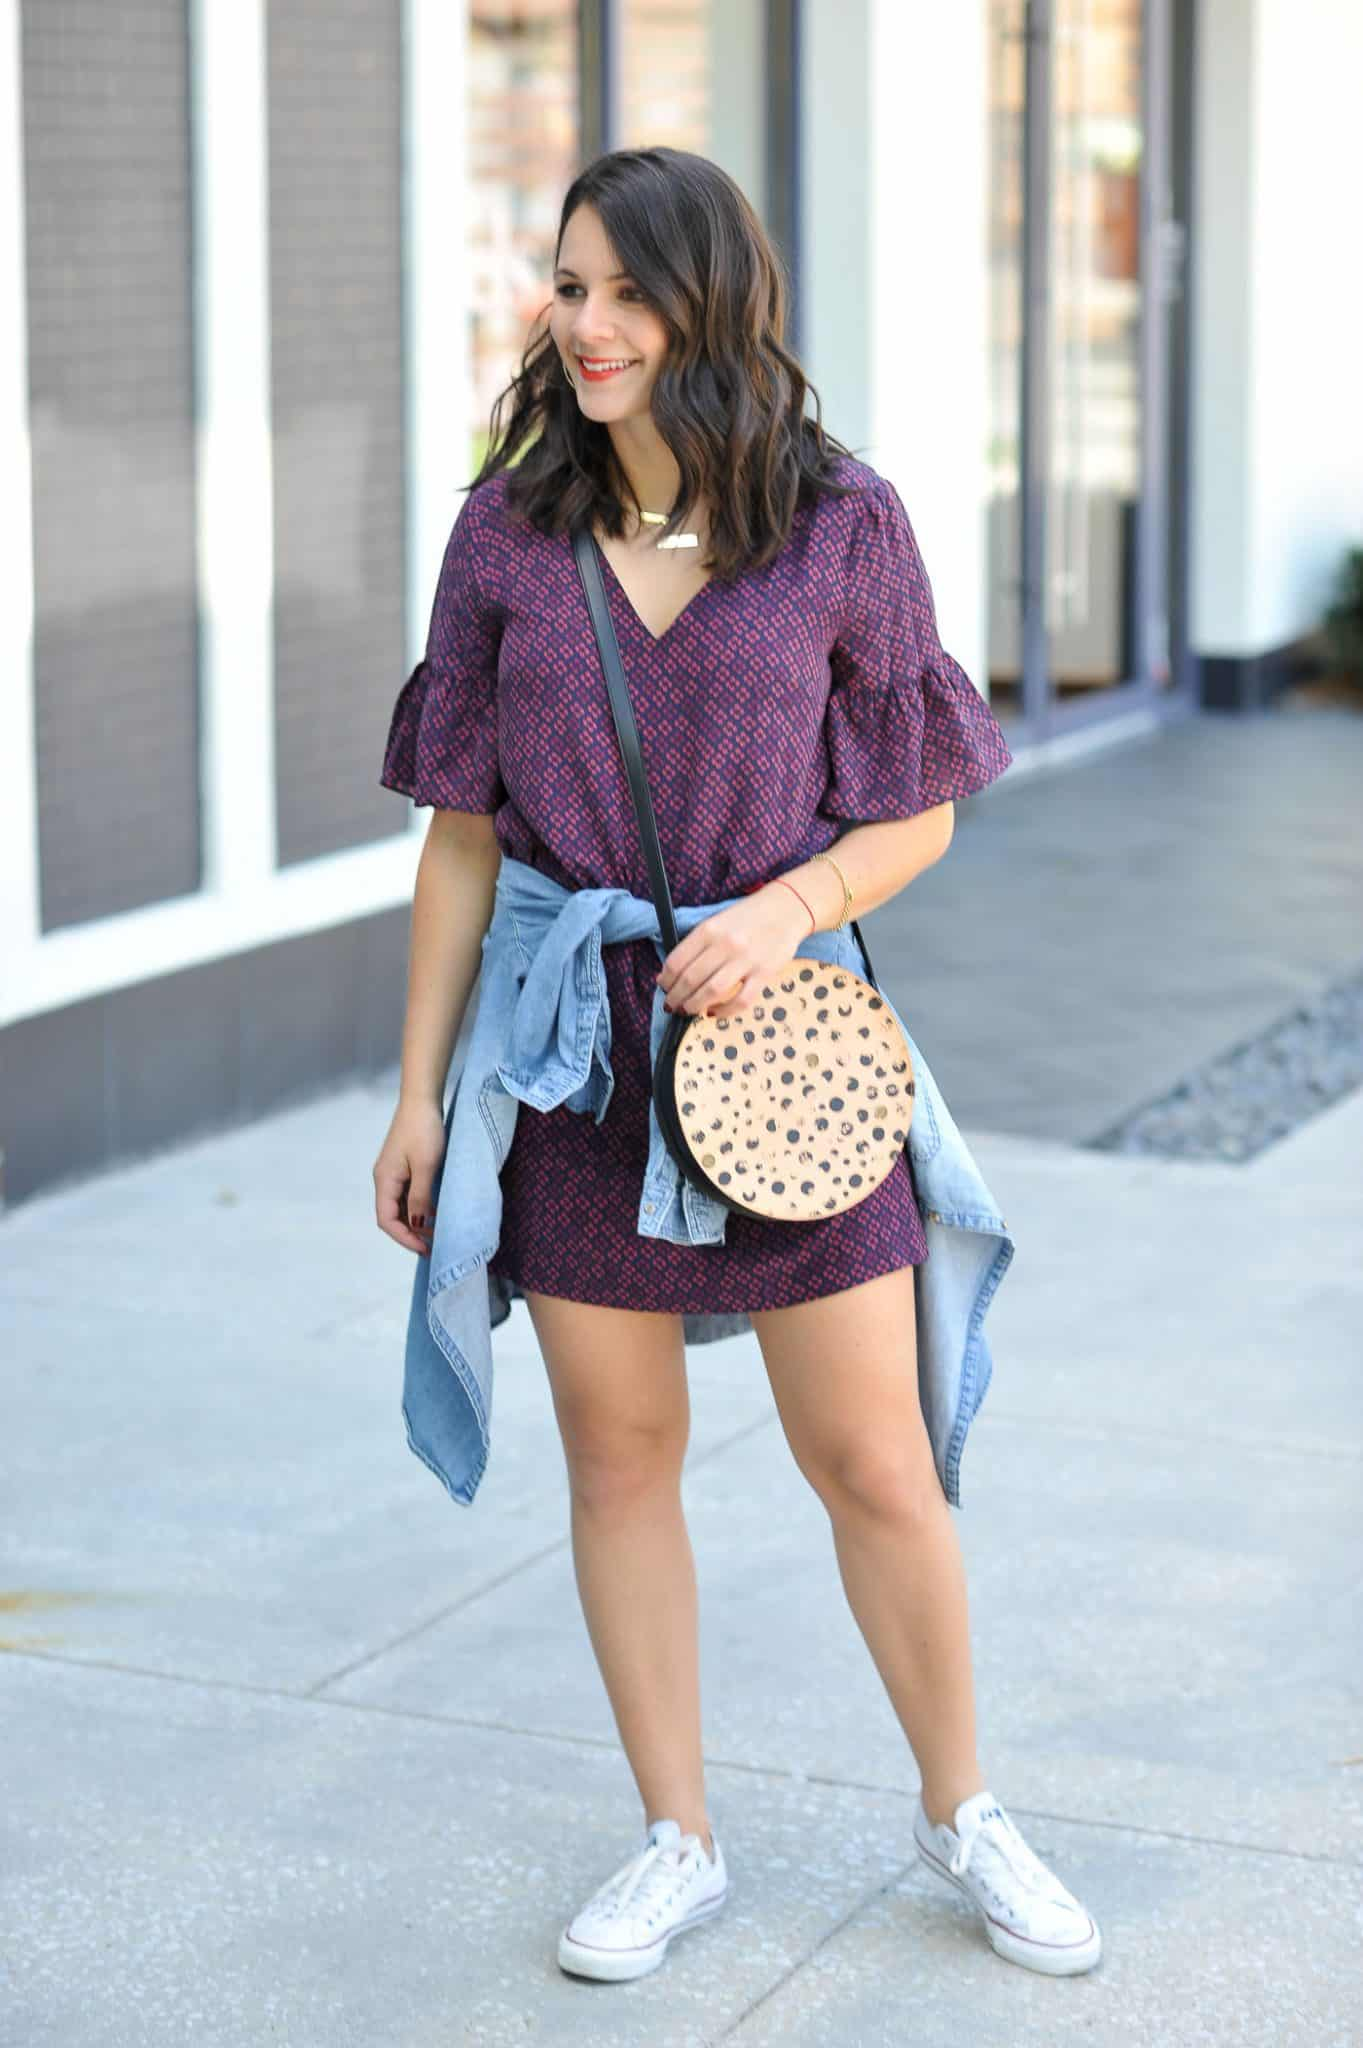 How to make your converse more comfortable, styling a dress with converse - My Style Vita